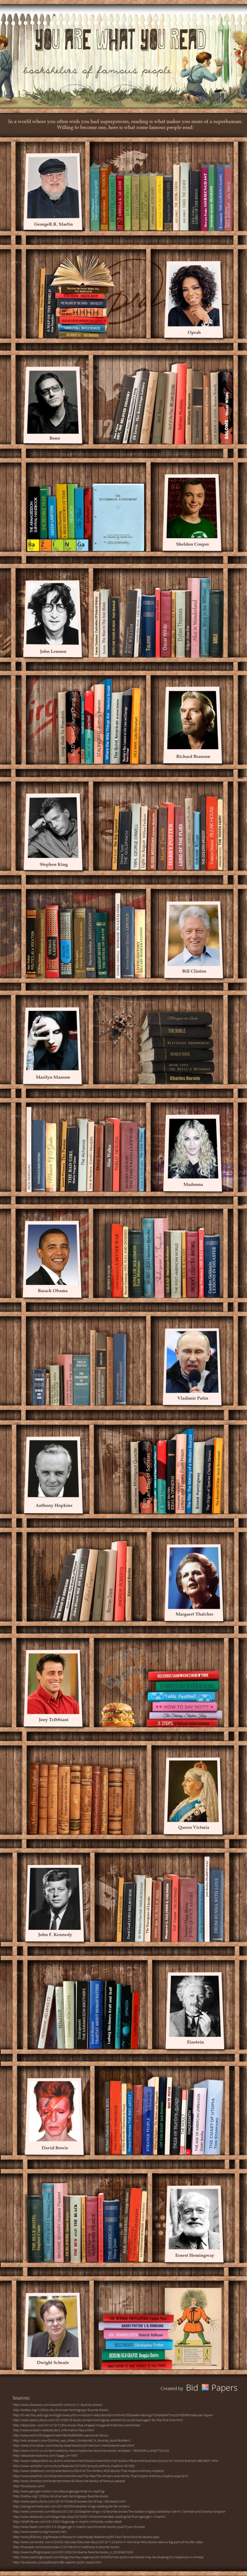 you-are-what-you-read-bookshelves-of-famous-people_5356935090238_w1500